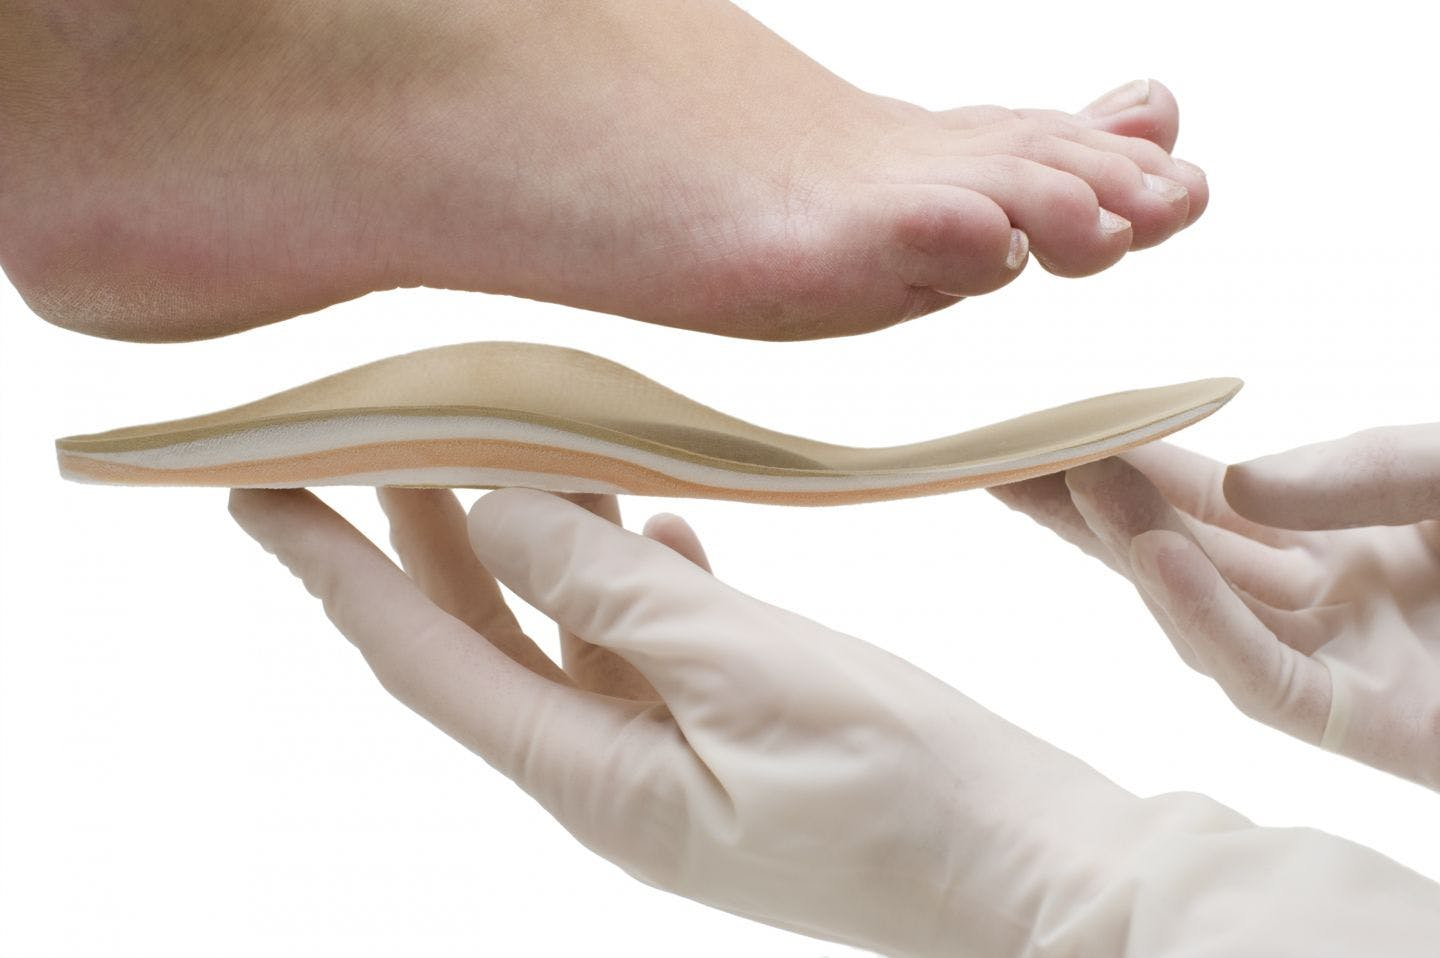 Custom Foot Orthotics For Back Pain